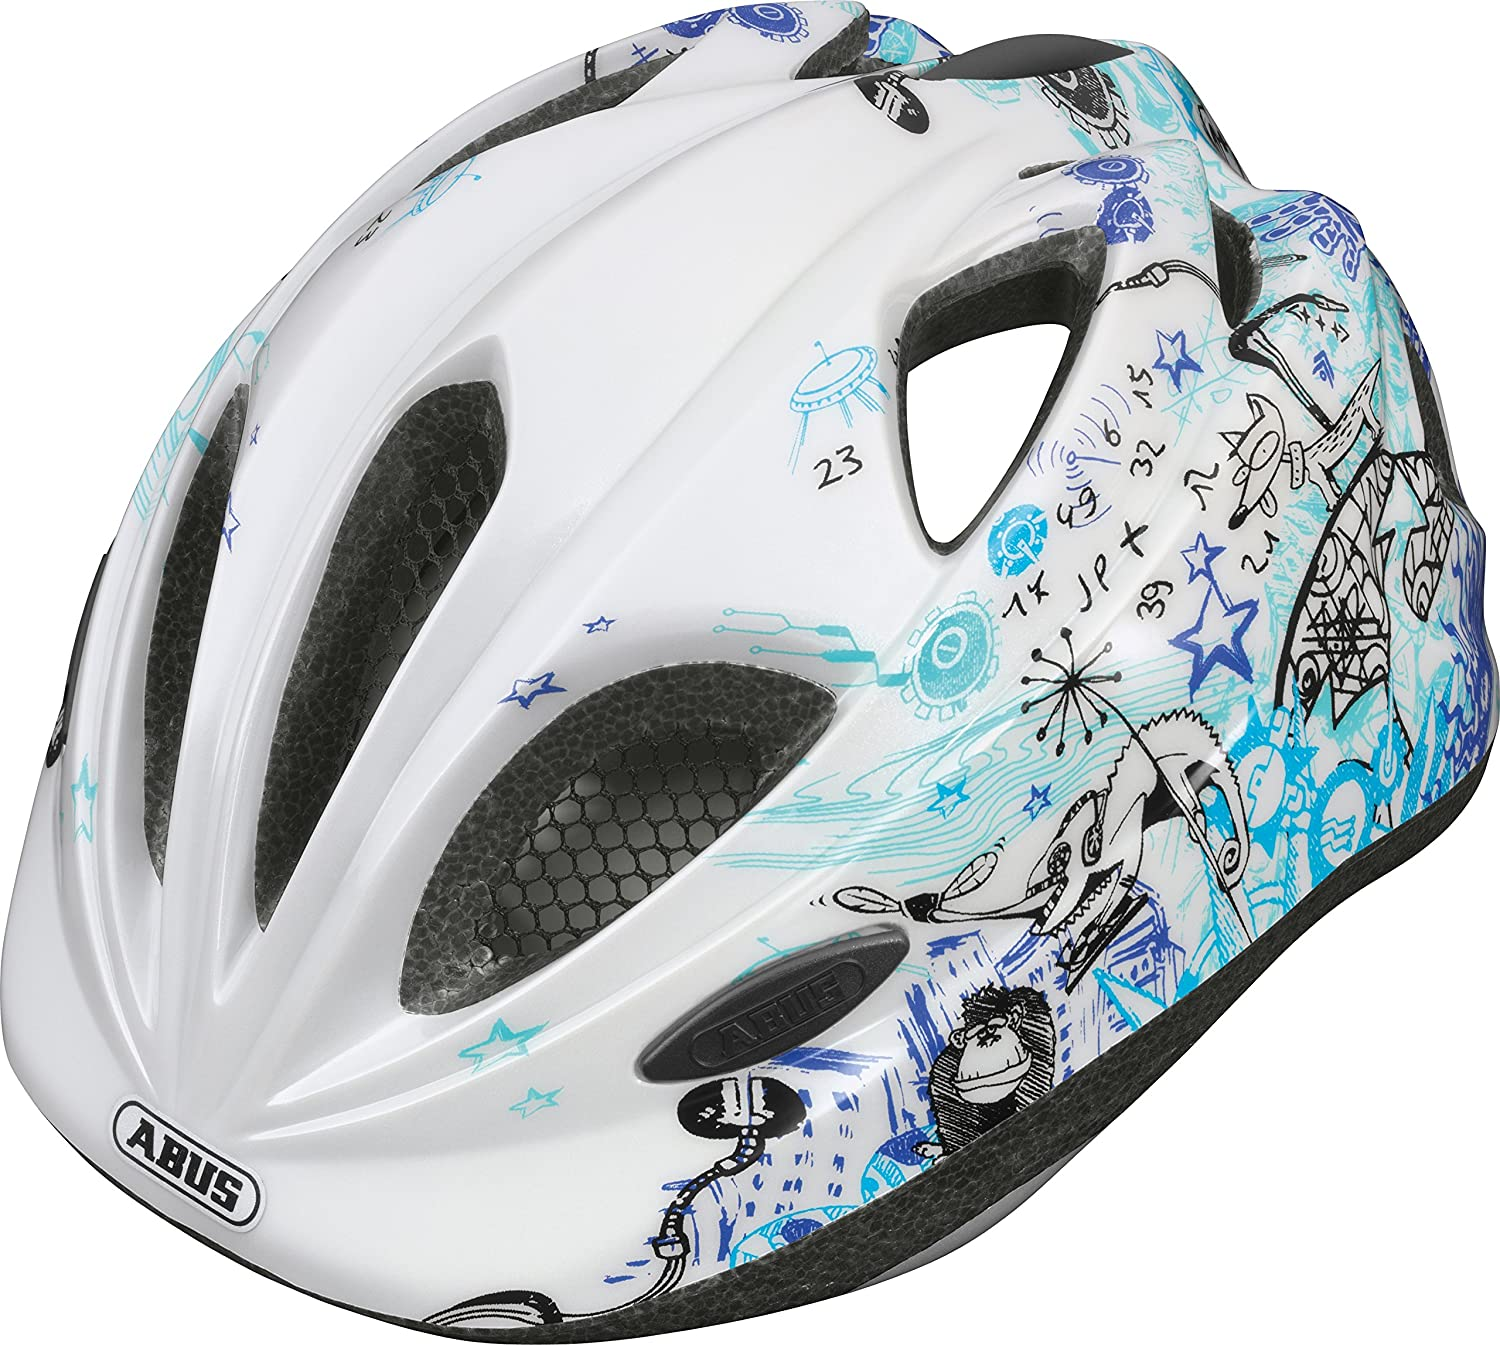 Abus Fahrradhelm Super Chilly Scribble Blue 46 52 cm 3 Amazon Sport & Freizeit